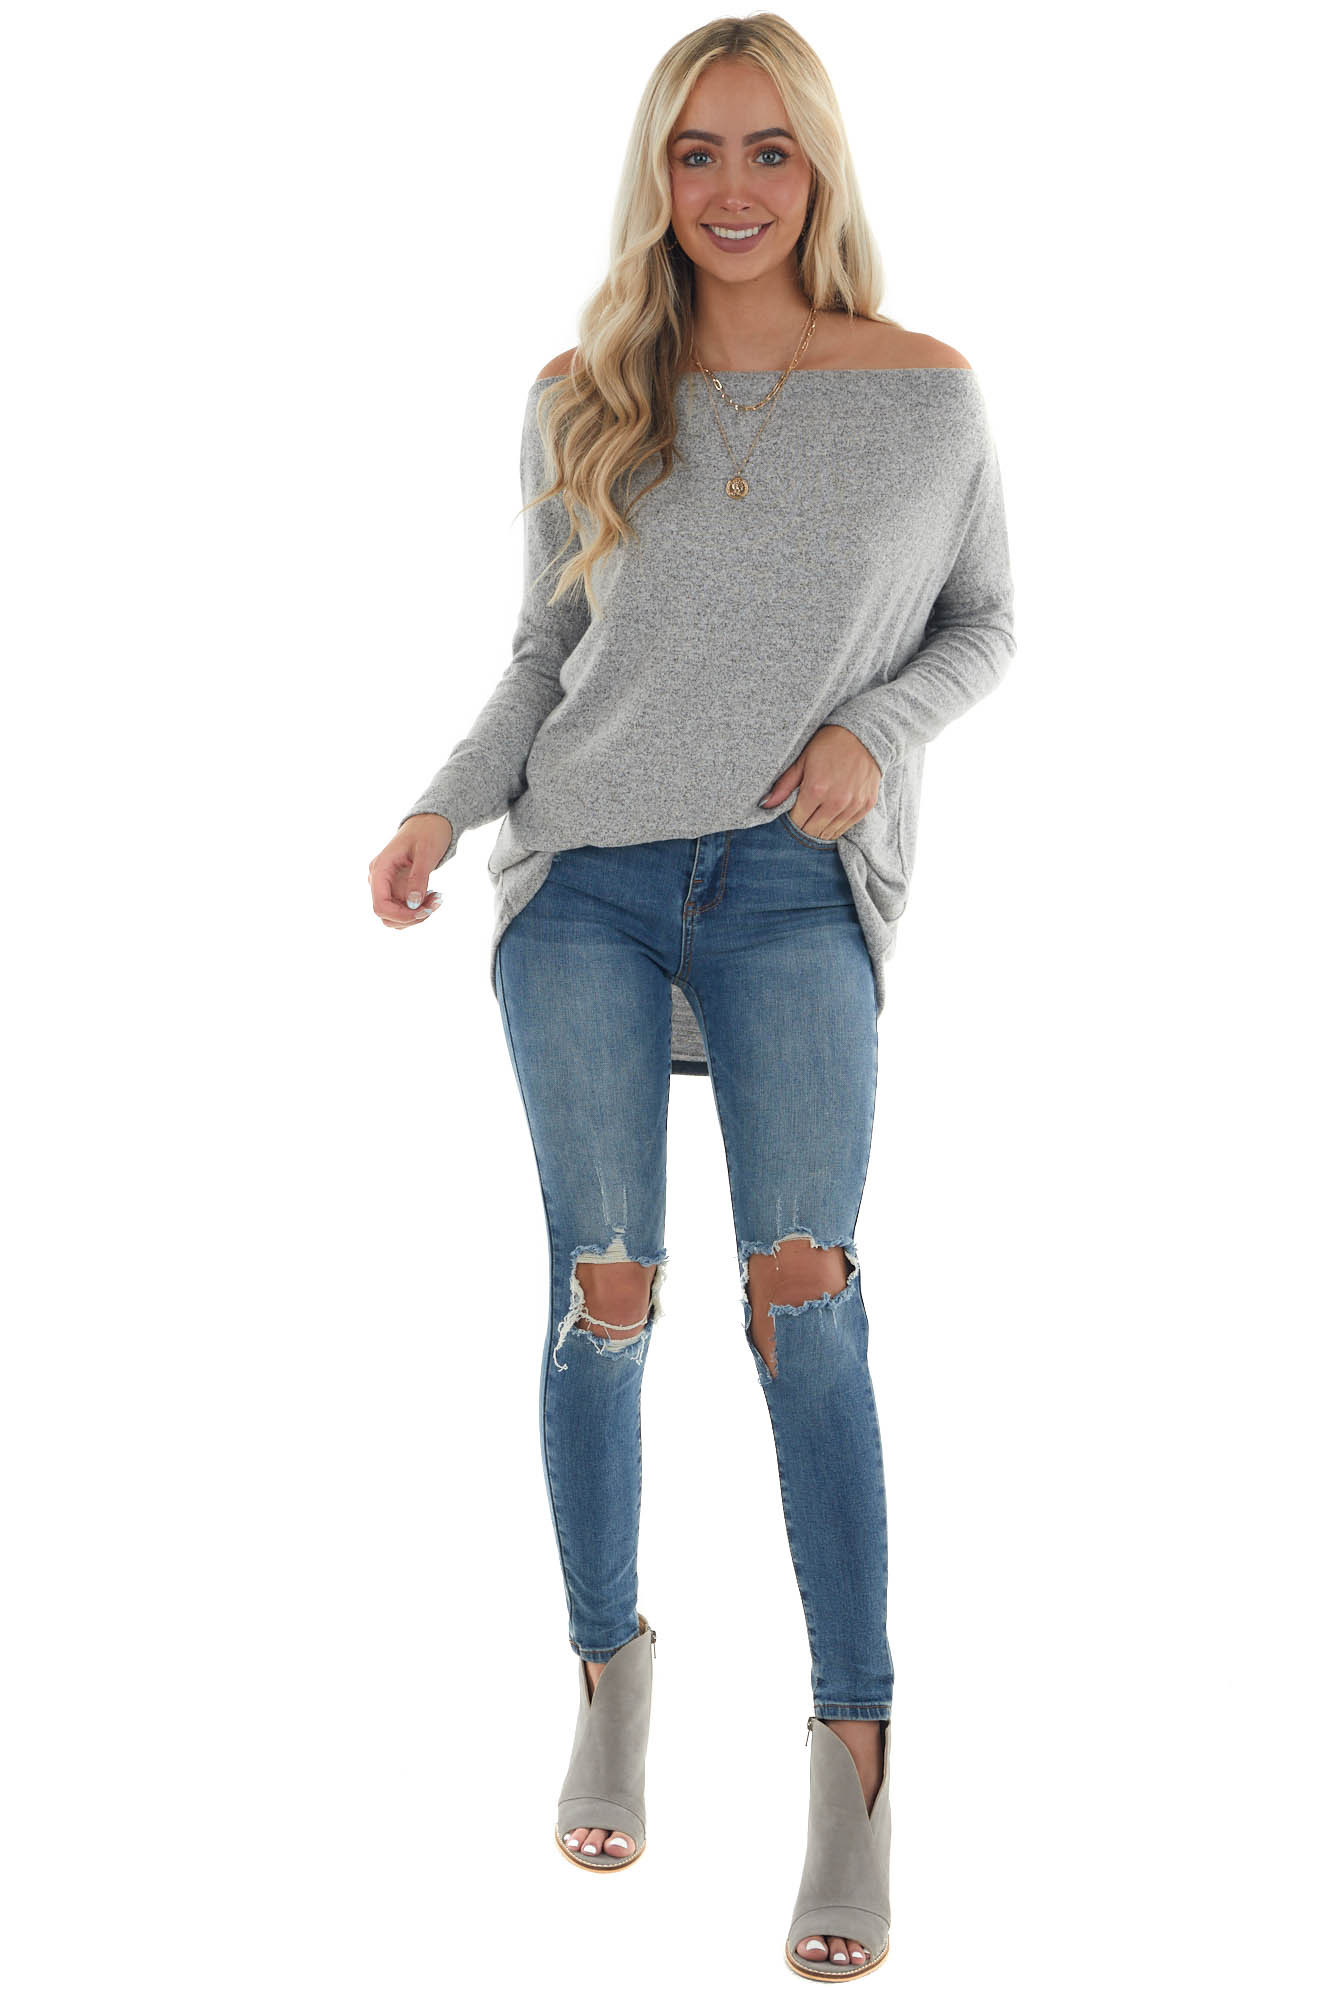 Dove Grey Two Tone Off the Shoulder Long Sleeve Knit Top